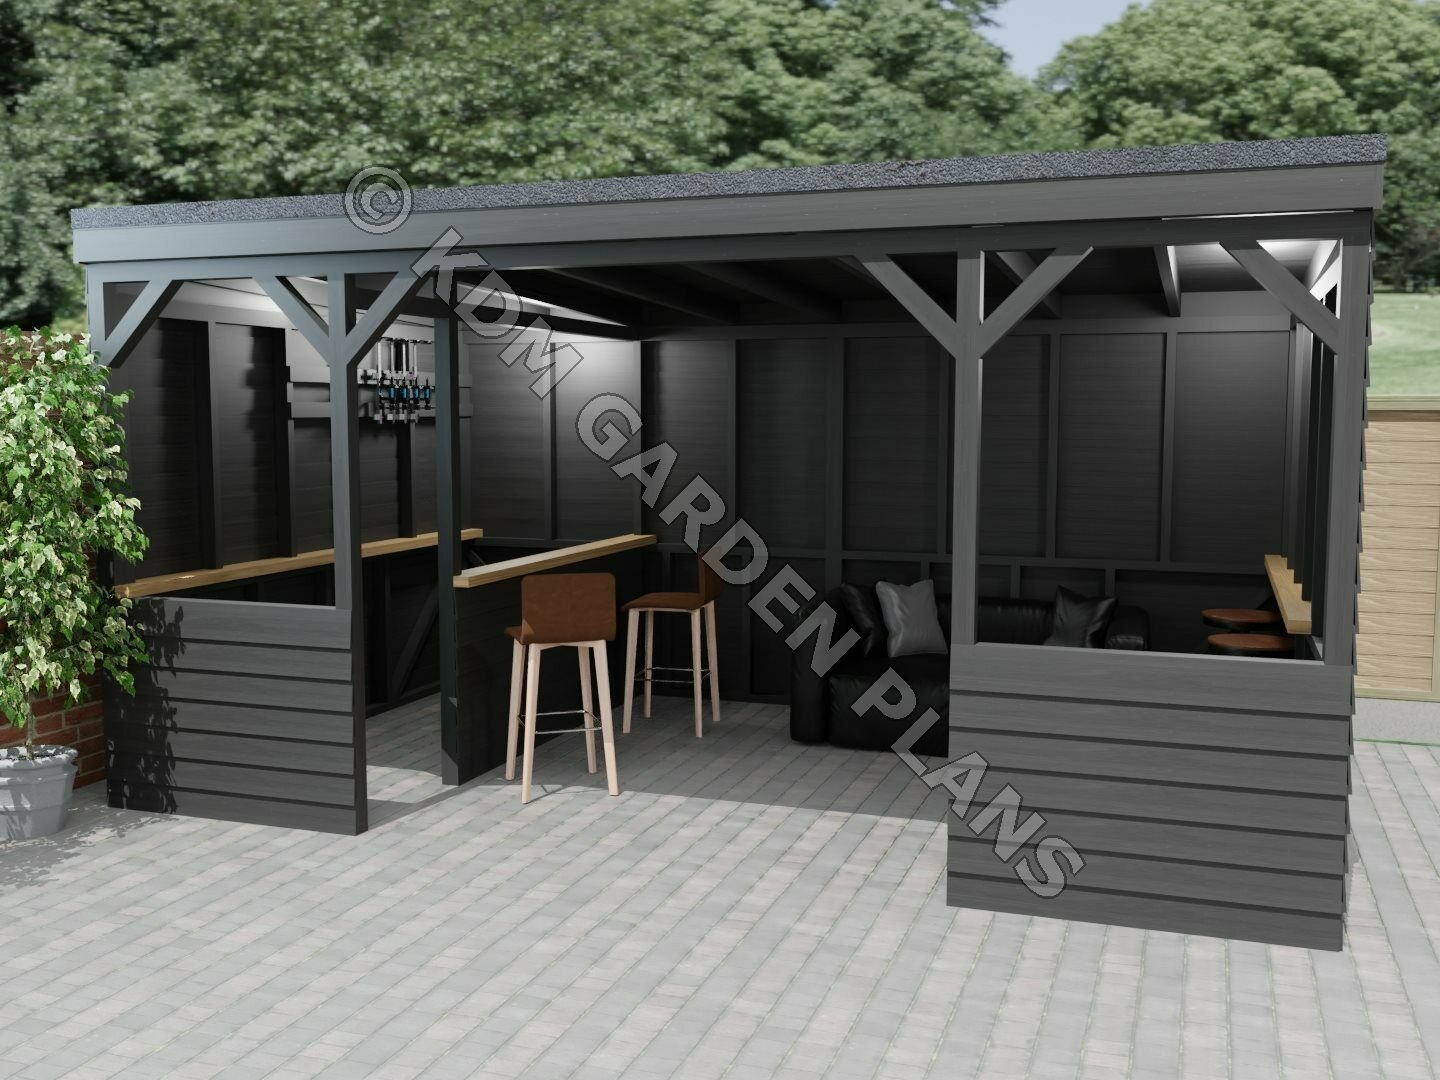 Woodwork Plans for Bar Hot Tub Shelter 3.0mx4.8m Pub (Plans Only by Email)  | eBay